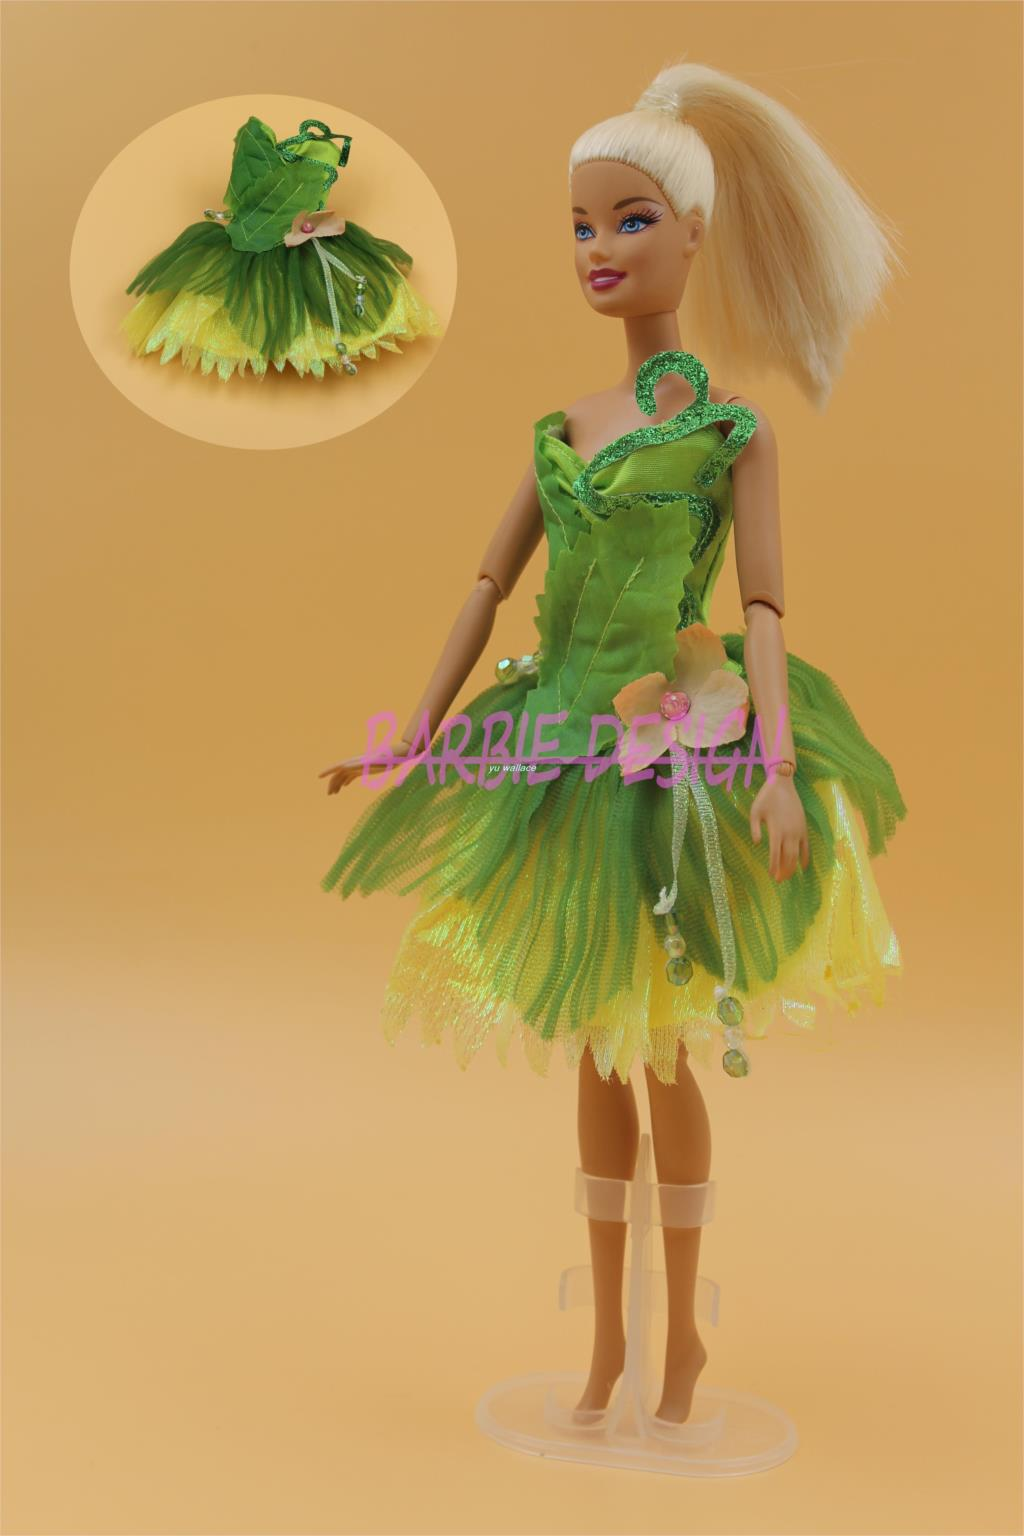 1 Pcs Tree fairies Stunning Trend Handmade skirt garments Get together gown Outfits For Barbie doll The perfect reward